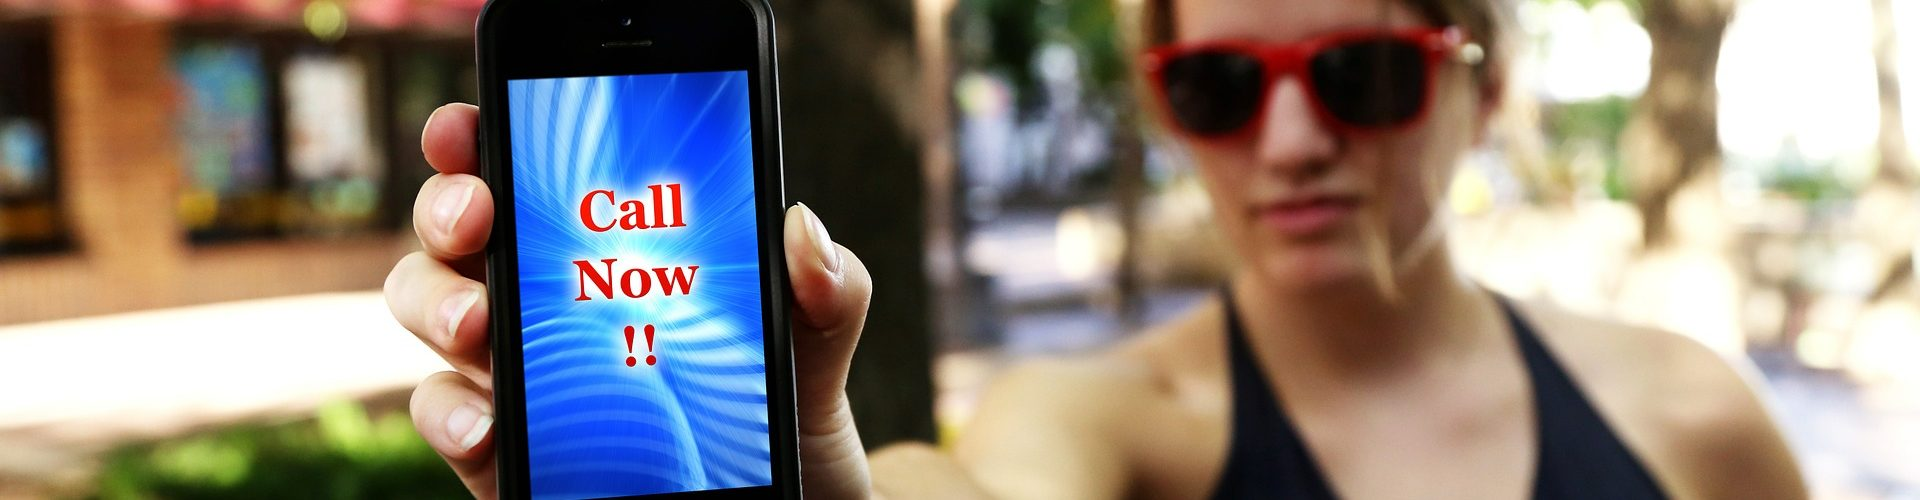 6 Smartphone Etiquette Fails You Want to Avoid